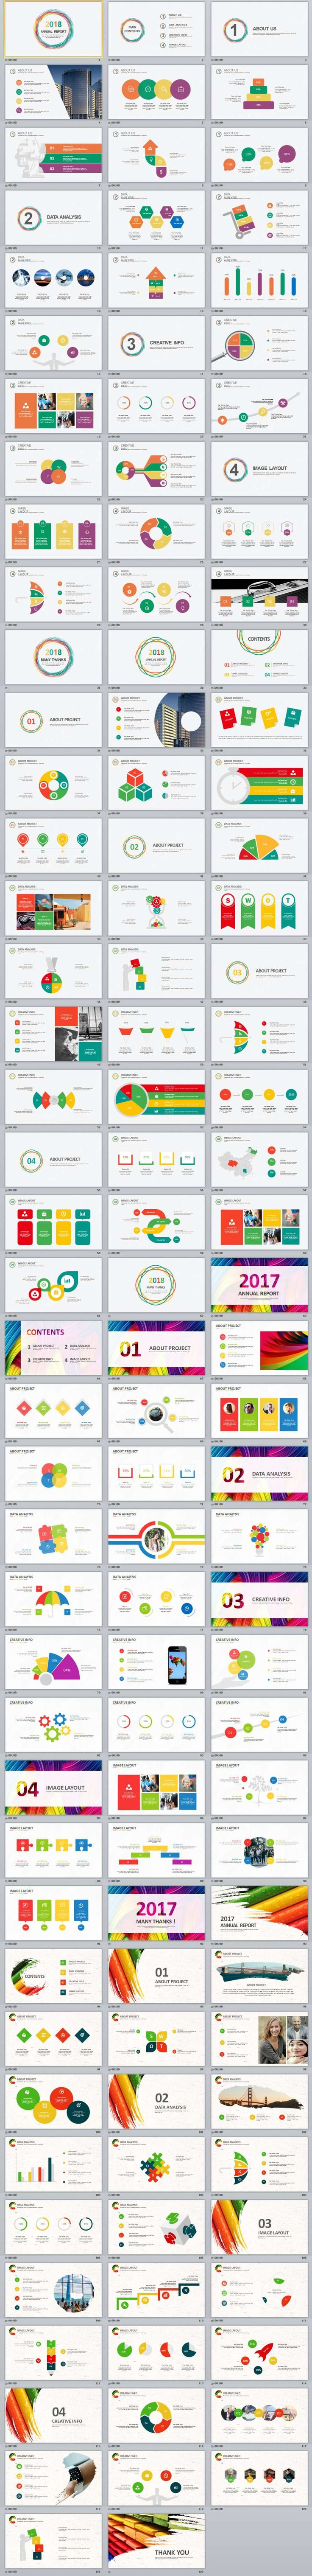 Best 25 powerpoint maker ideas on pinterest teacher resources 4 in 1 multicolor annual report powerpoint templates toneelgroepblik